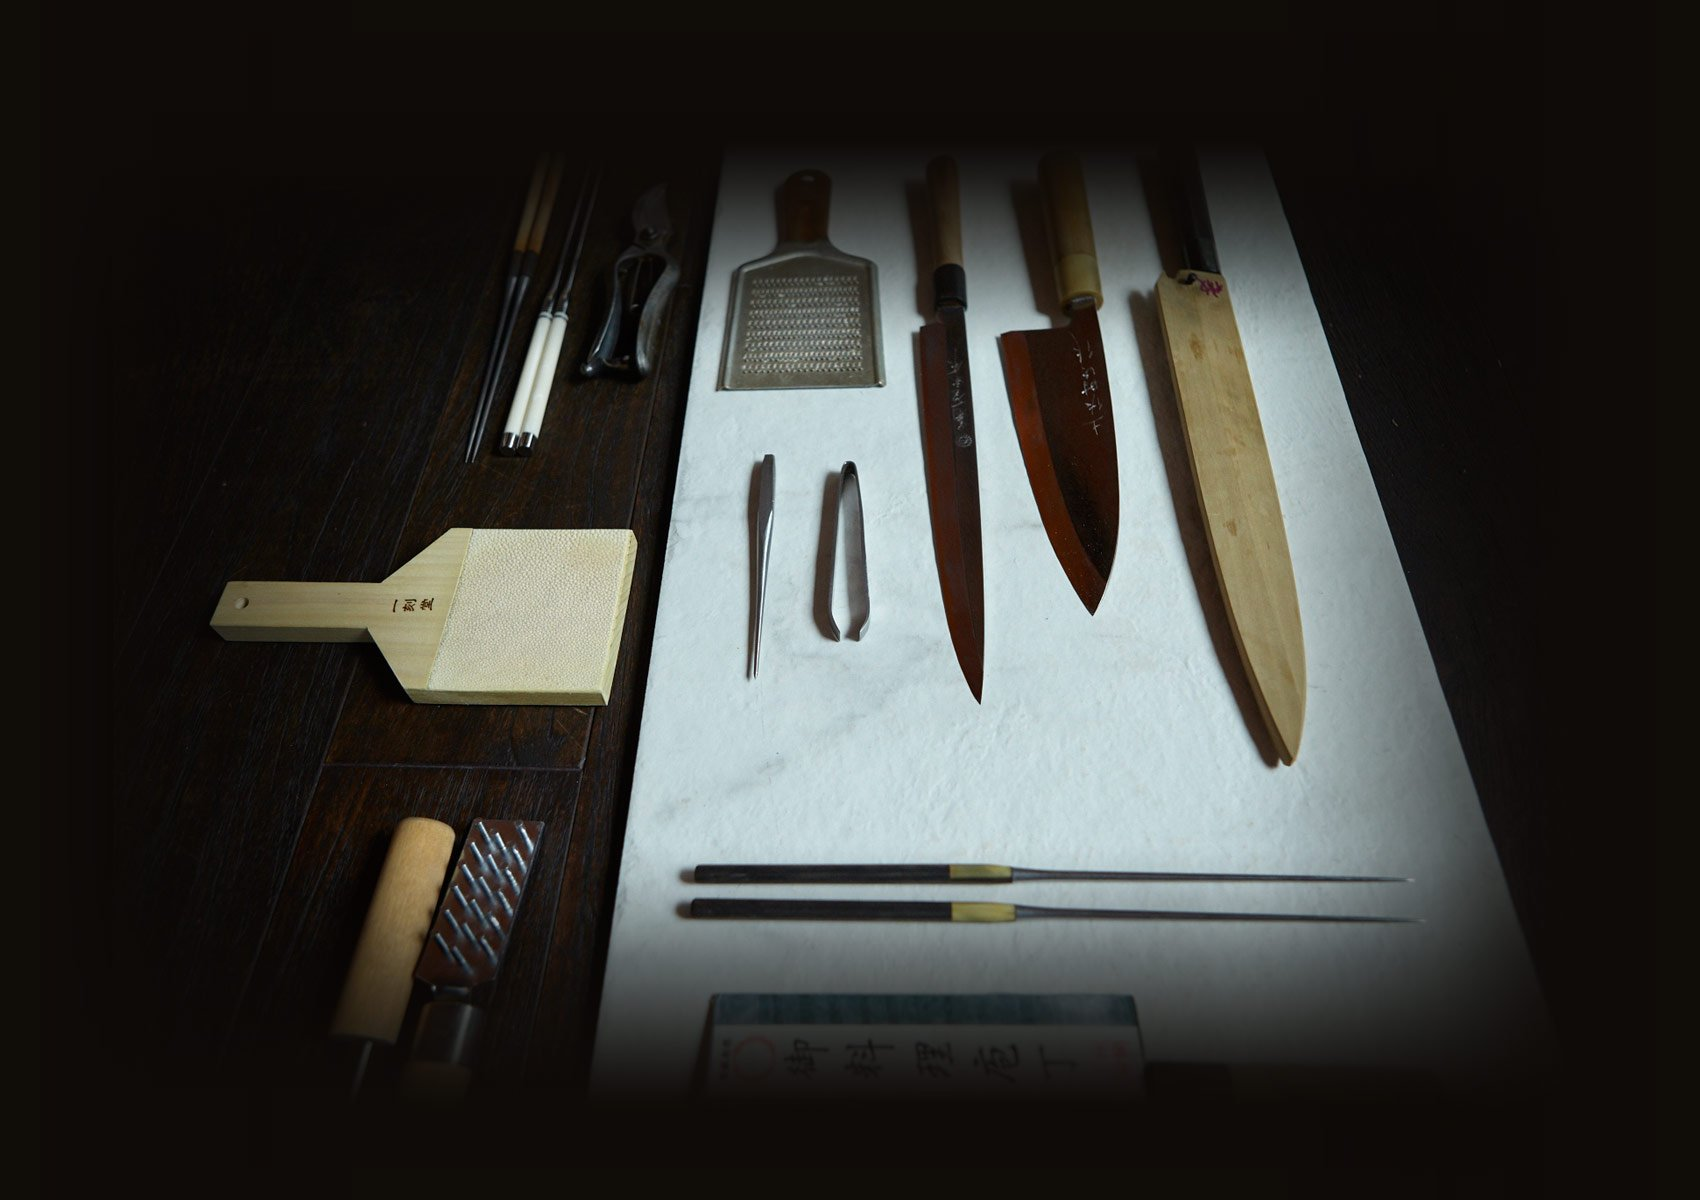 The instruments of Renown Chef Nobu Matsuhisa